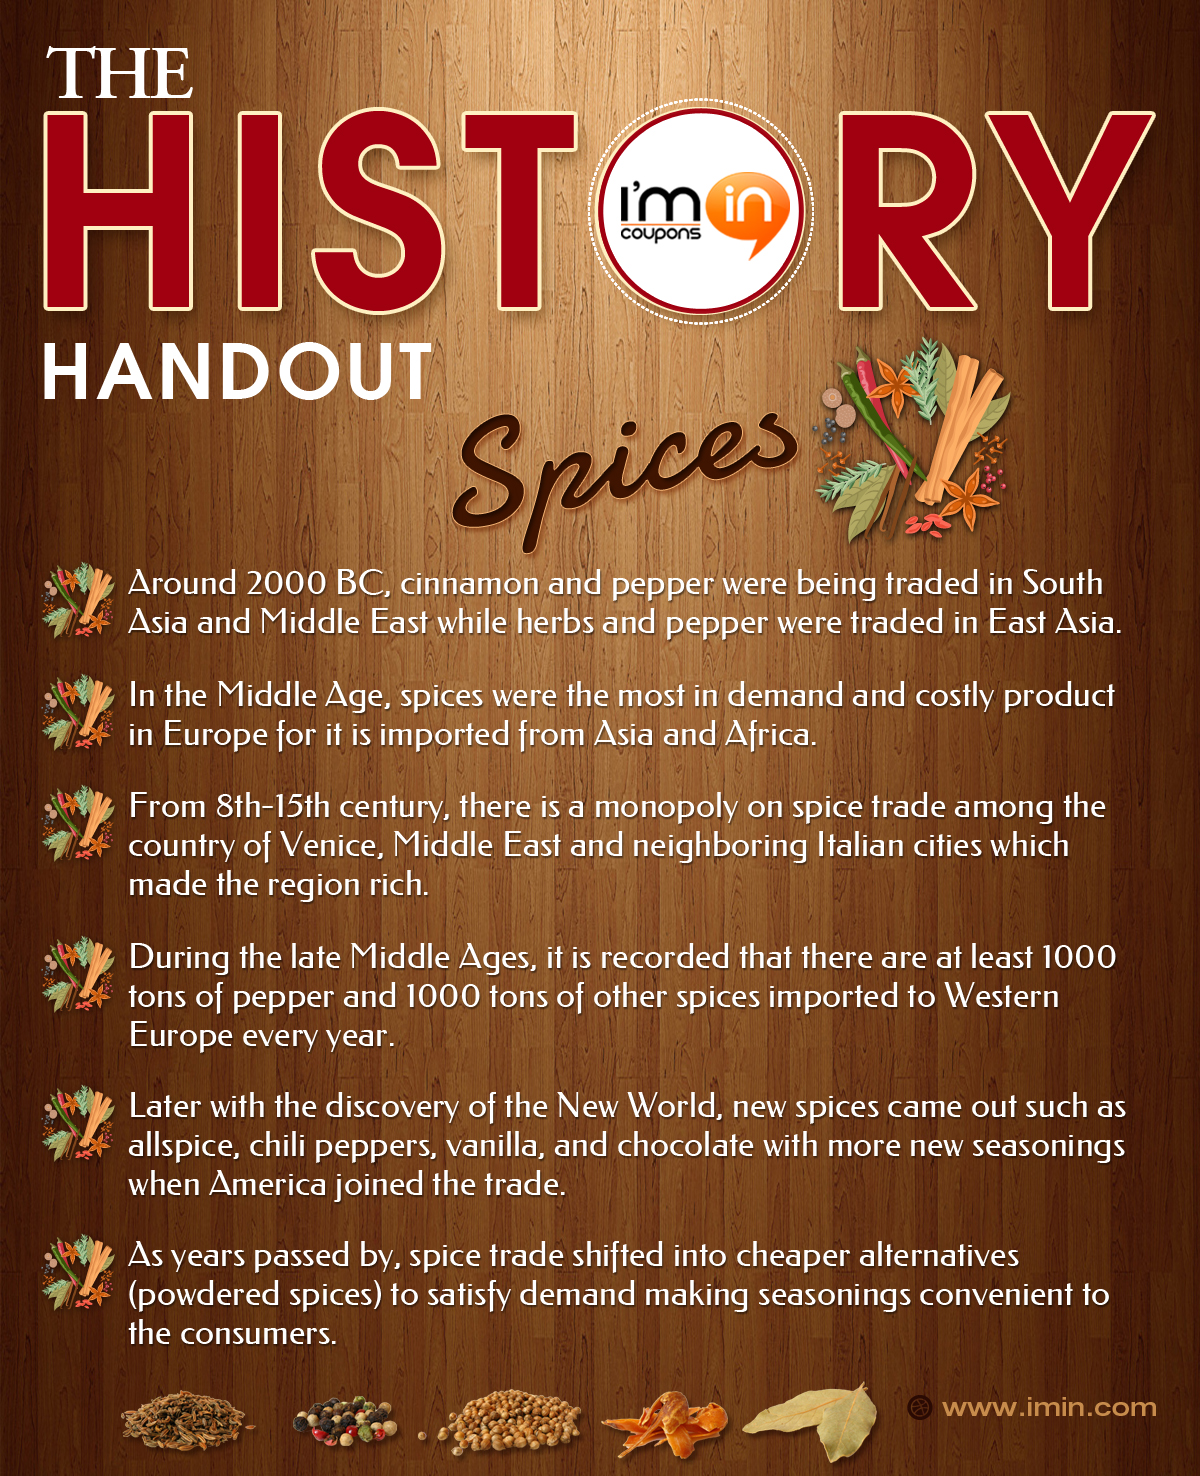 The History Handout - Spice   Visual ly